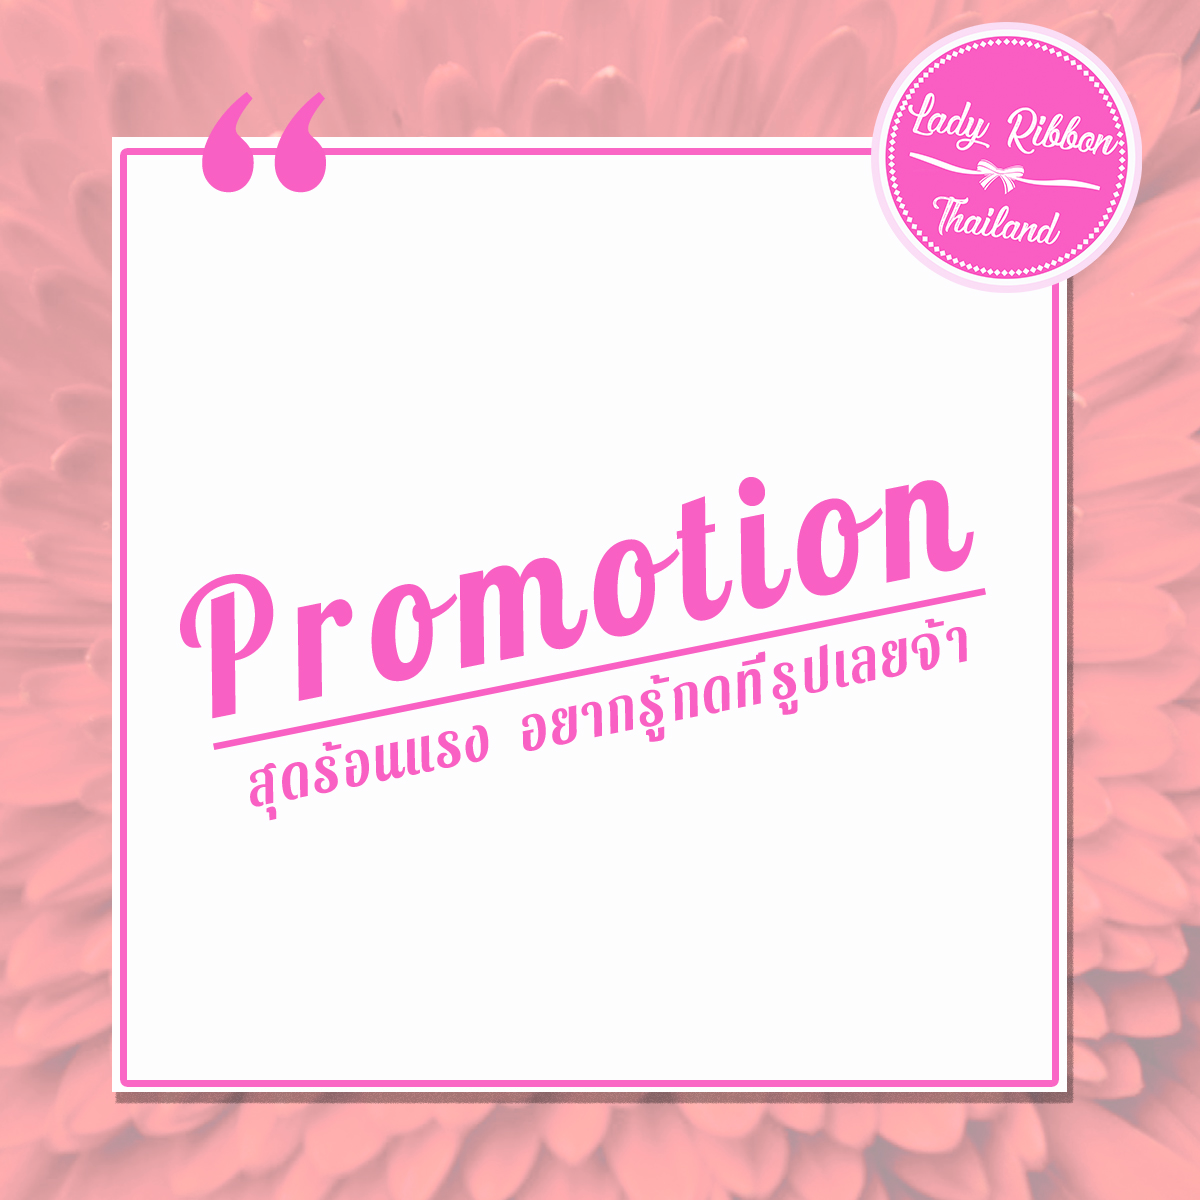 promotion cover lady ribbon thailand